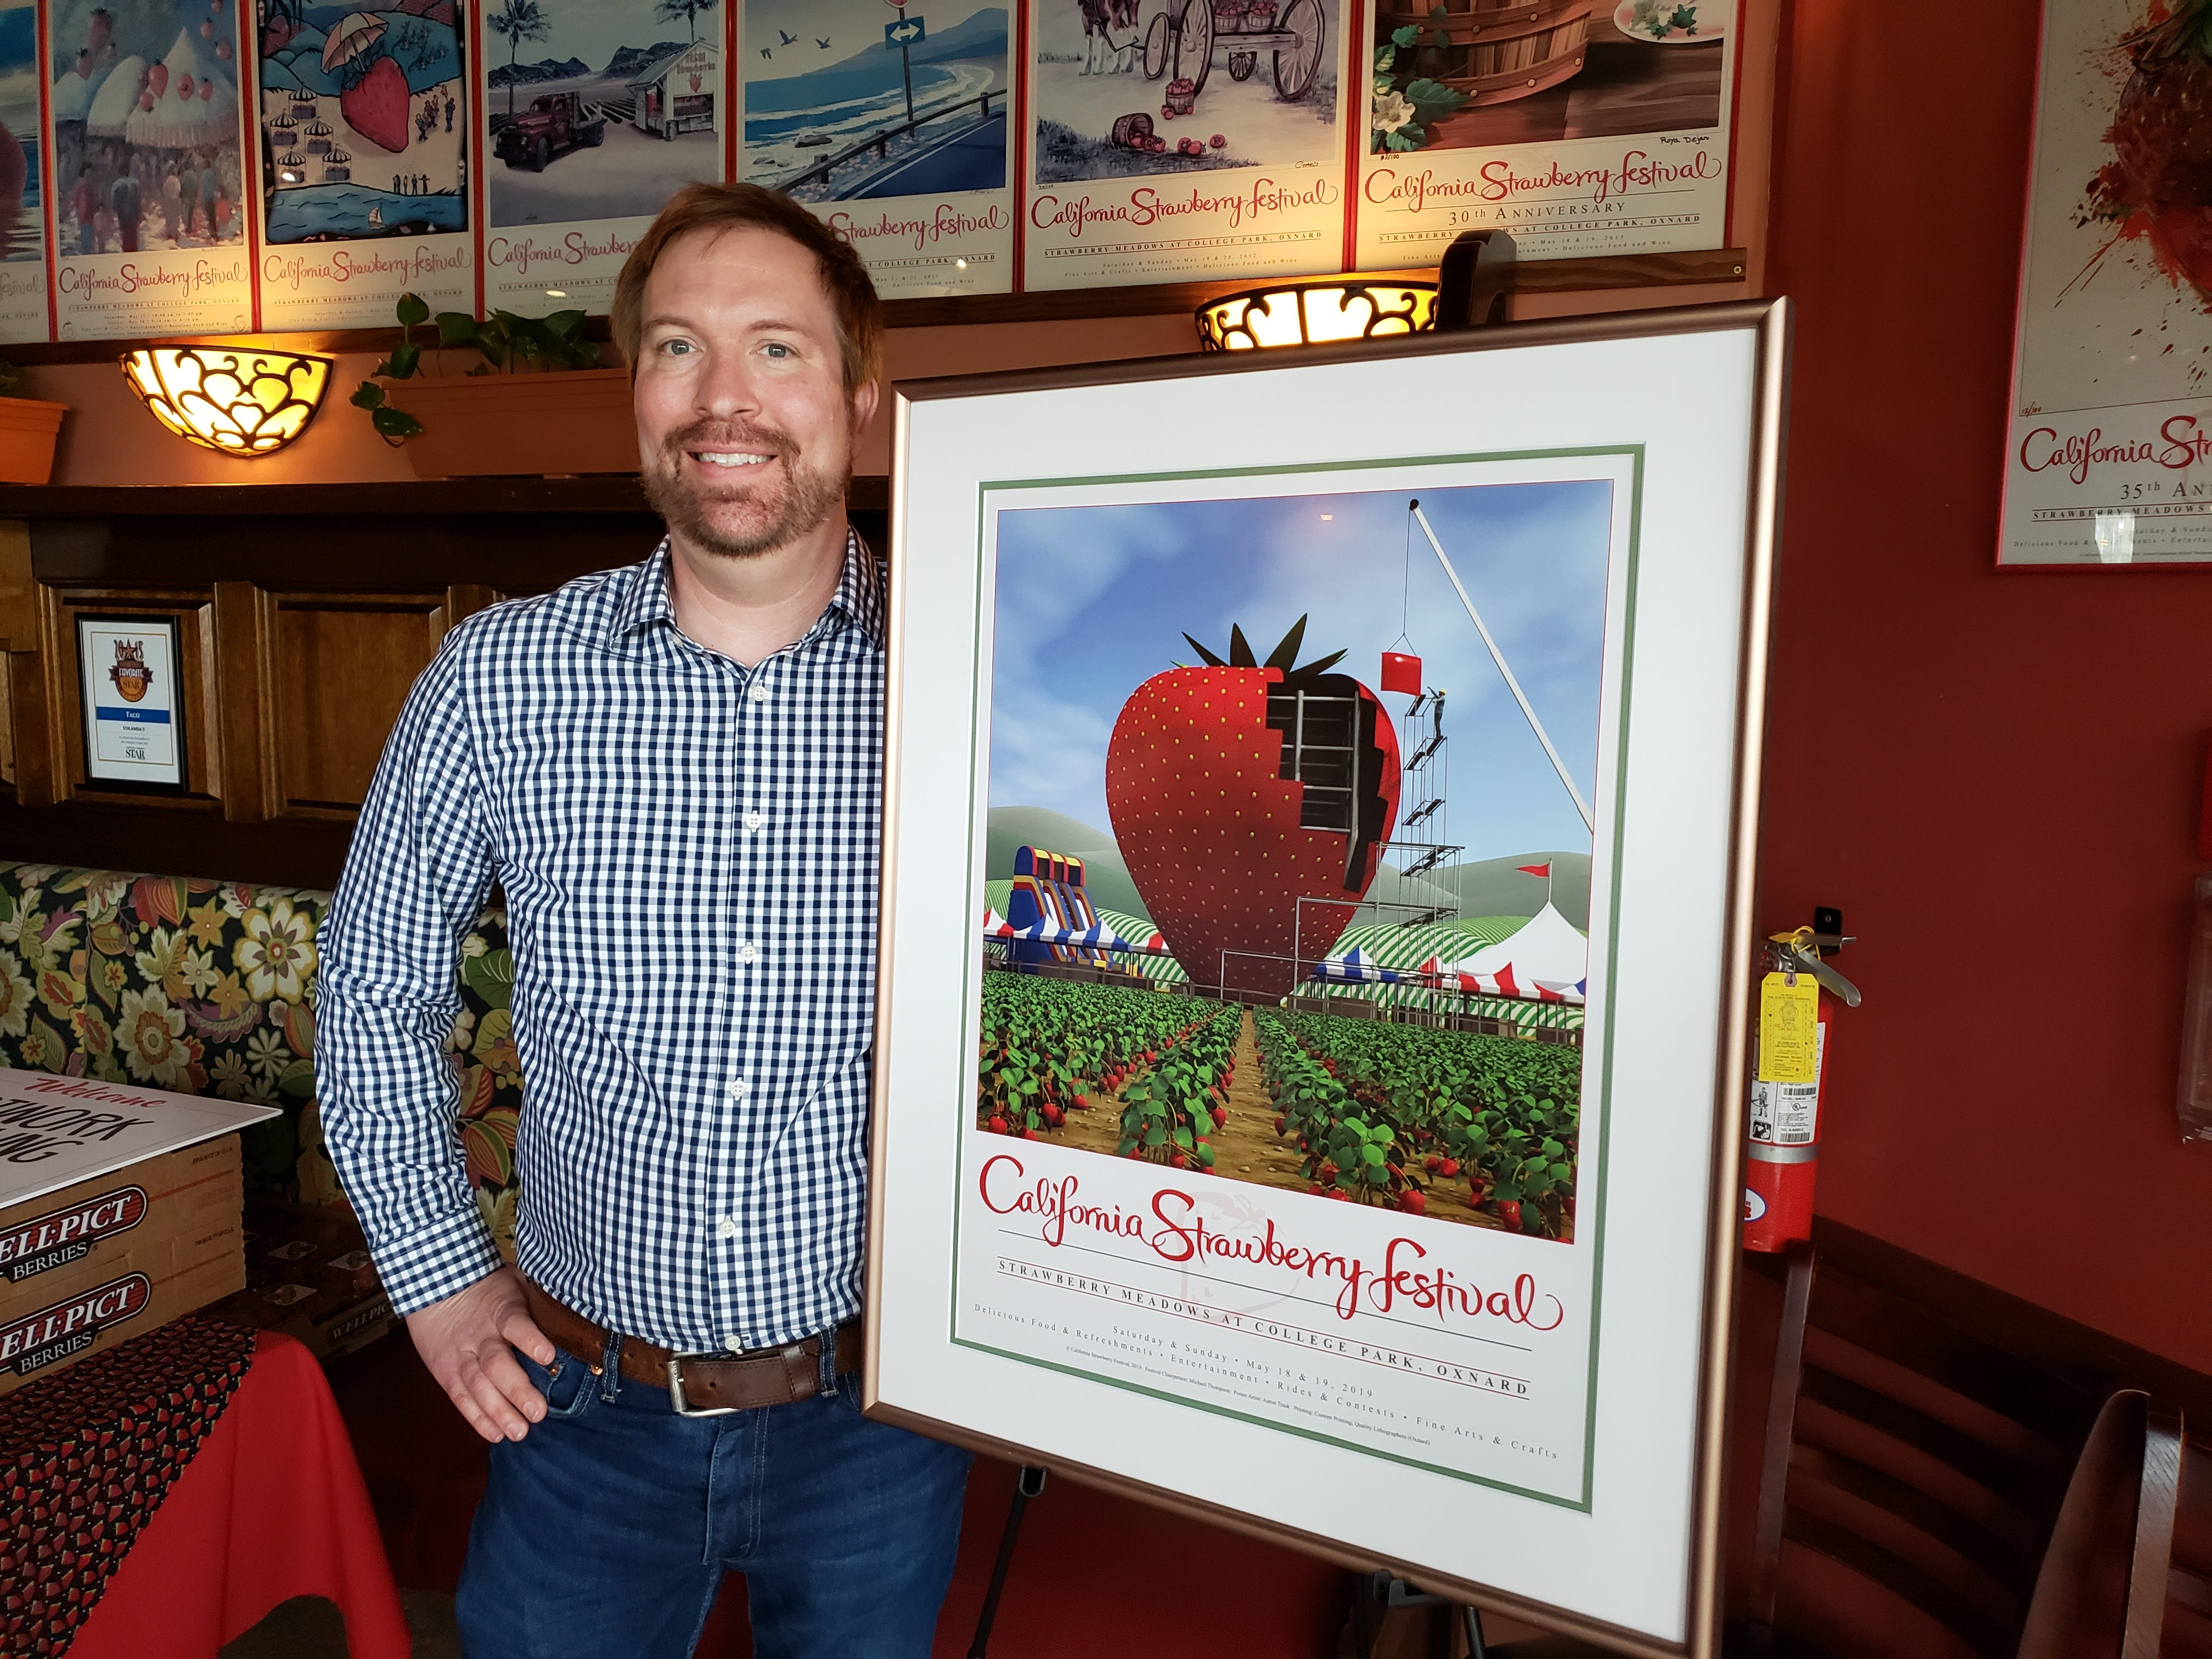 Aaron Trask, of Glendale, is the winner of the 36th Annual California Strawberry Festival poster competition. Trask's winning piece was unveiled Tuesday at Yolanda's Mexican Cafe in Oxnard.